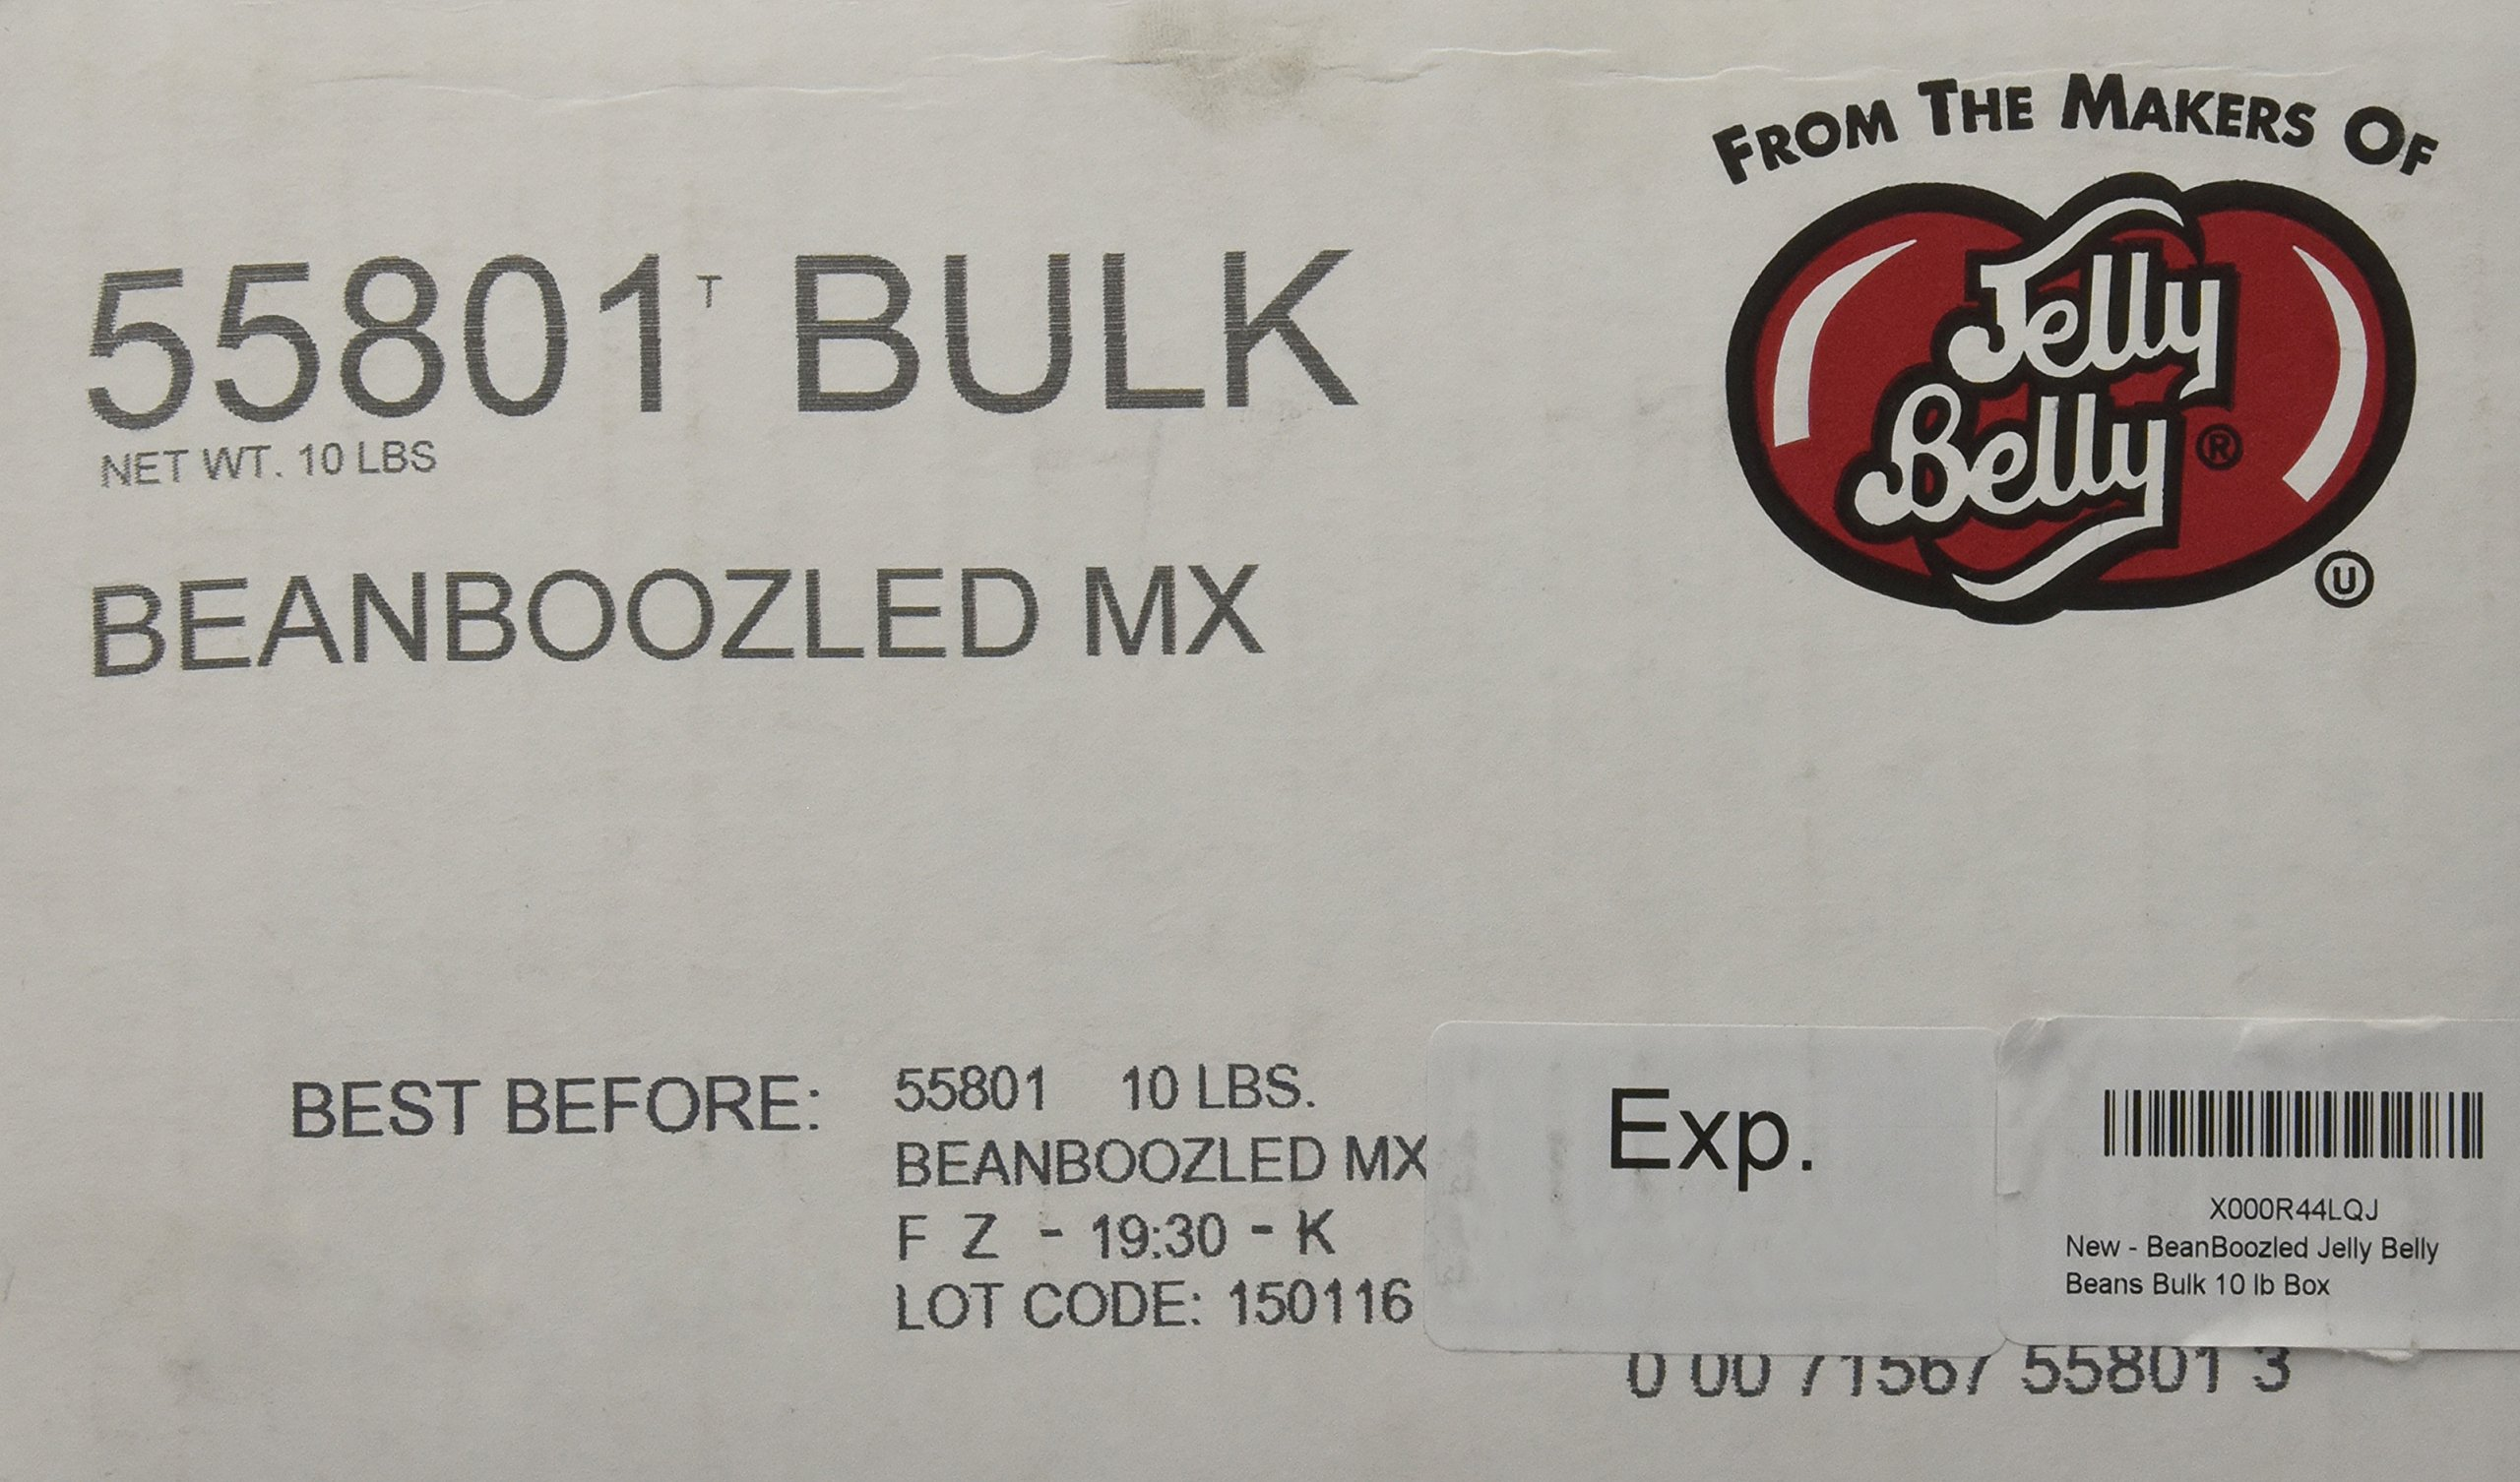 BeanBoozled Jelly Belly Beans Bulk 10 lb Box by Jelly Belly